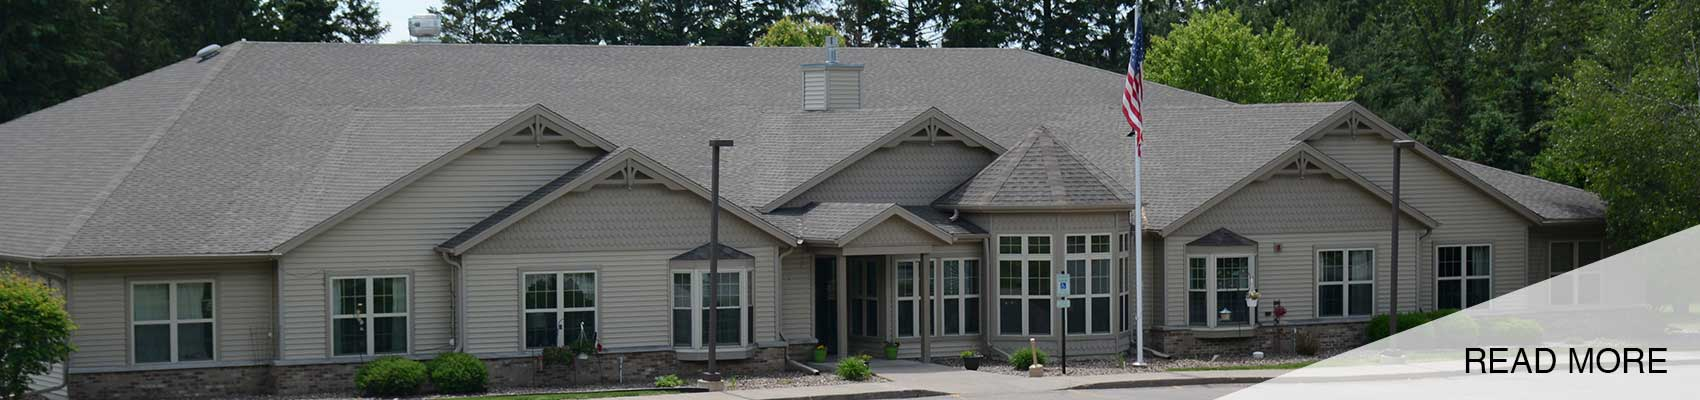 Copperleaf Senior Living   in Adams, WI